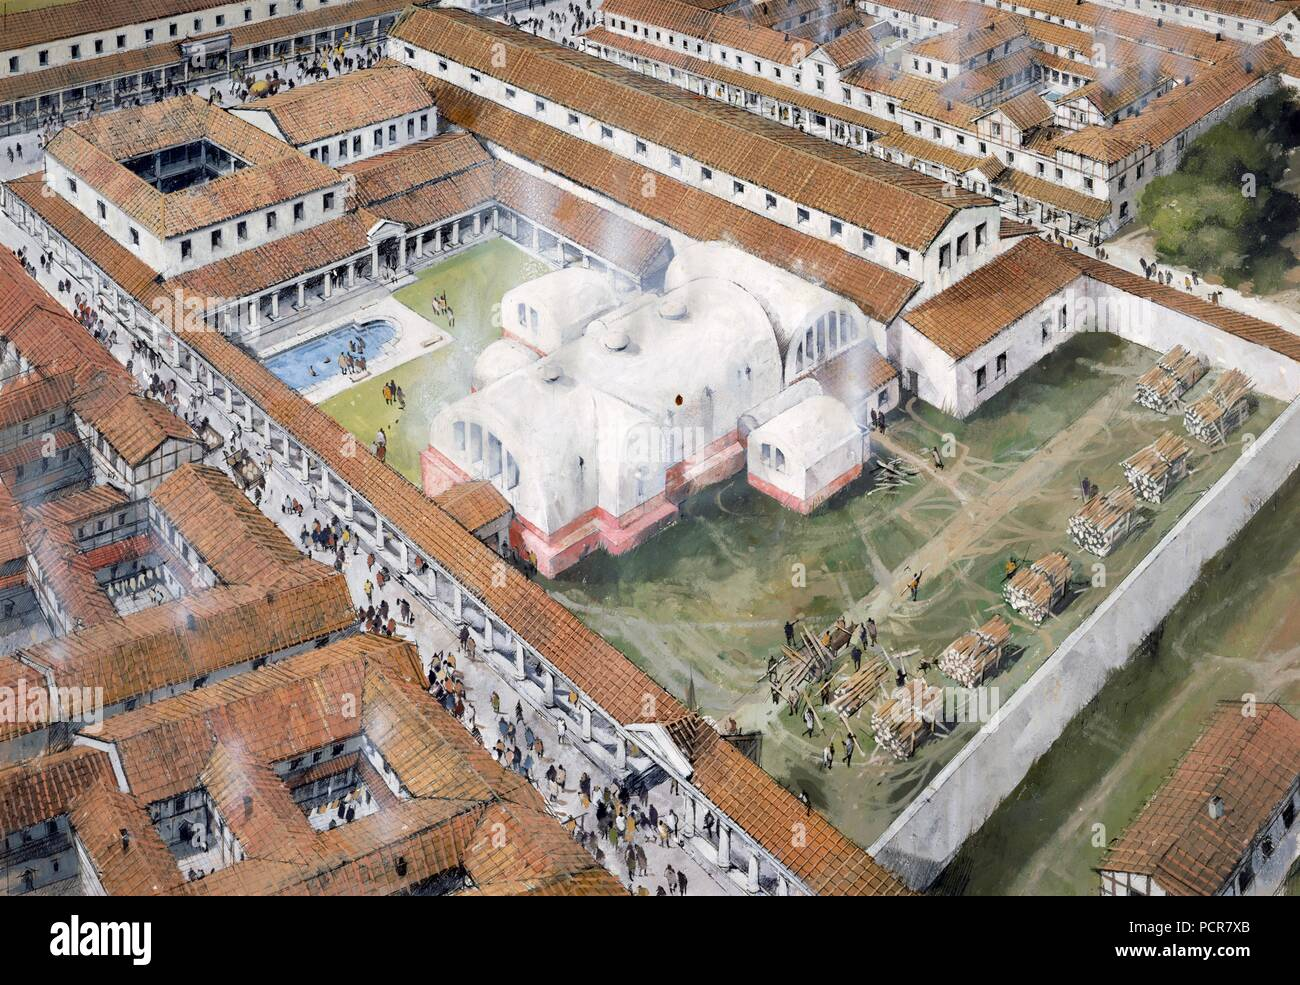 Baths, Wroxeter Roman City, Shropshire, 2nd century (c1980-c2017). Aerial view reconstuction drawing. - Stock Image